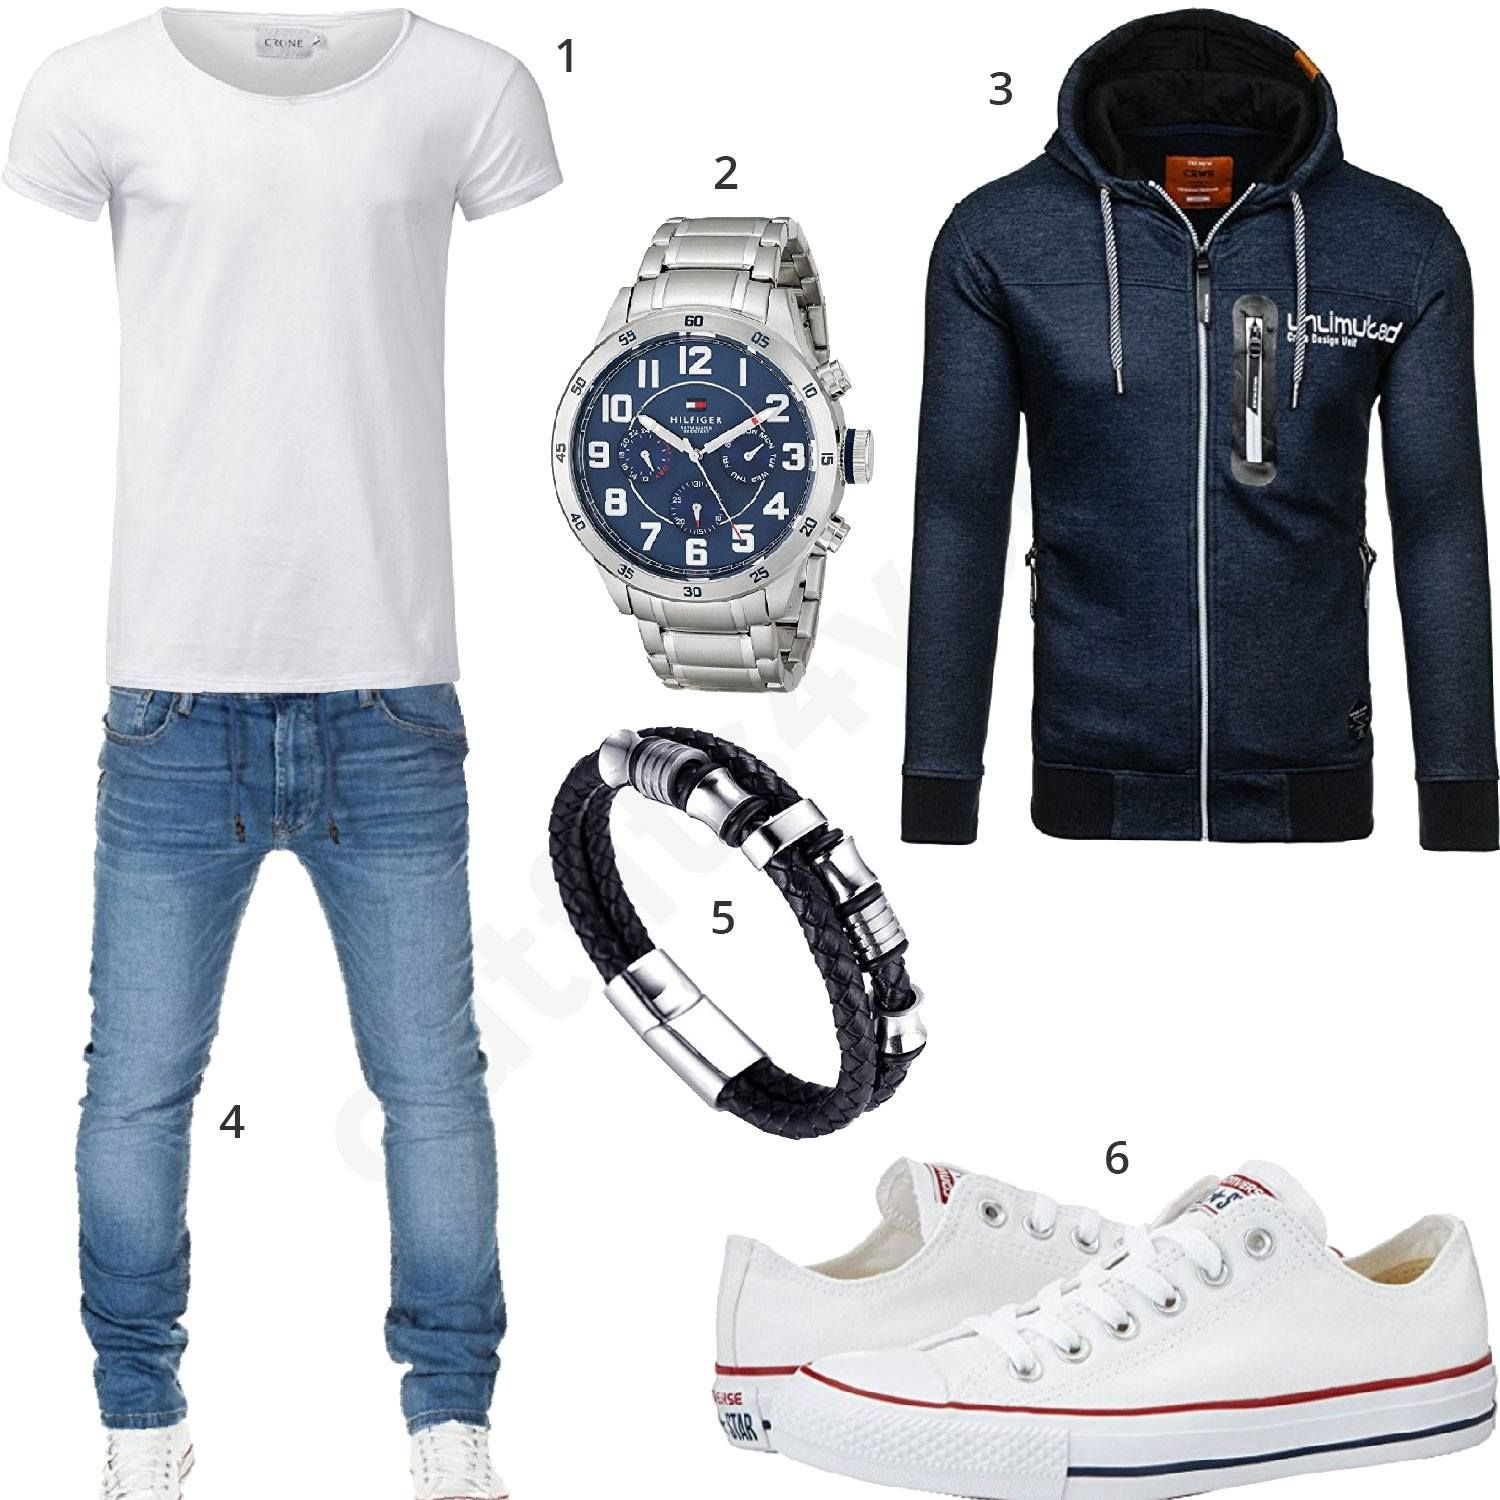 herren style mit wei em crone shirt tommy hilfiger uhr blauem bolf pullover wotega jeans. Black Bedroom Furniture Sets. Home Design Ideas